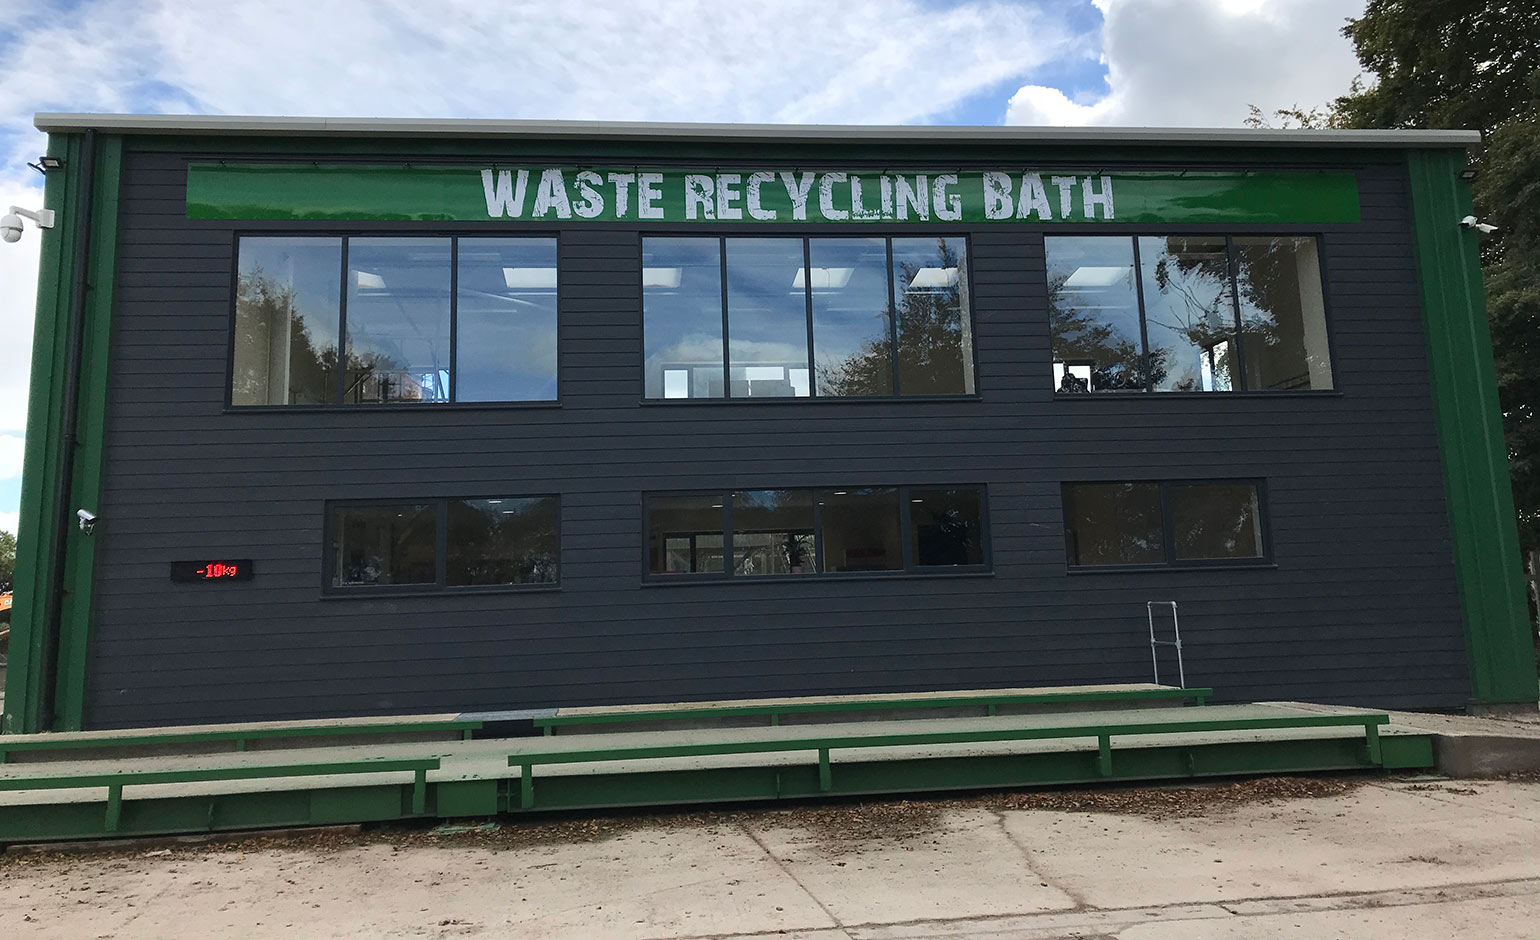 Redevelopment sees reopening of Odd Down waste recycling site in Bath